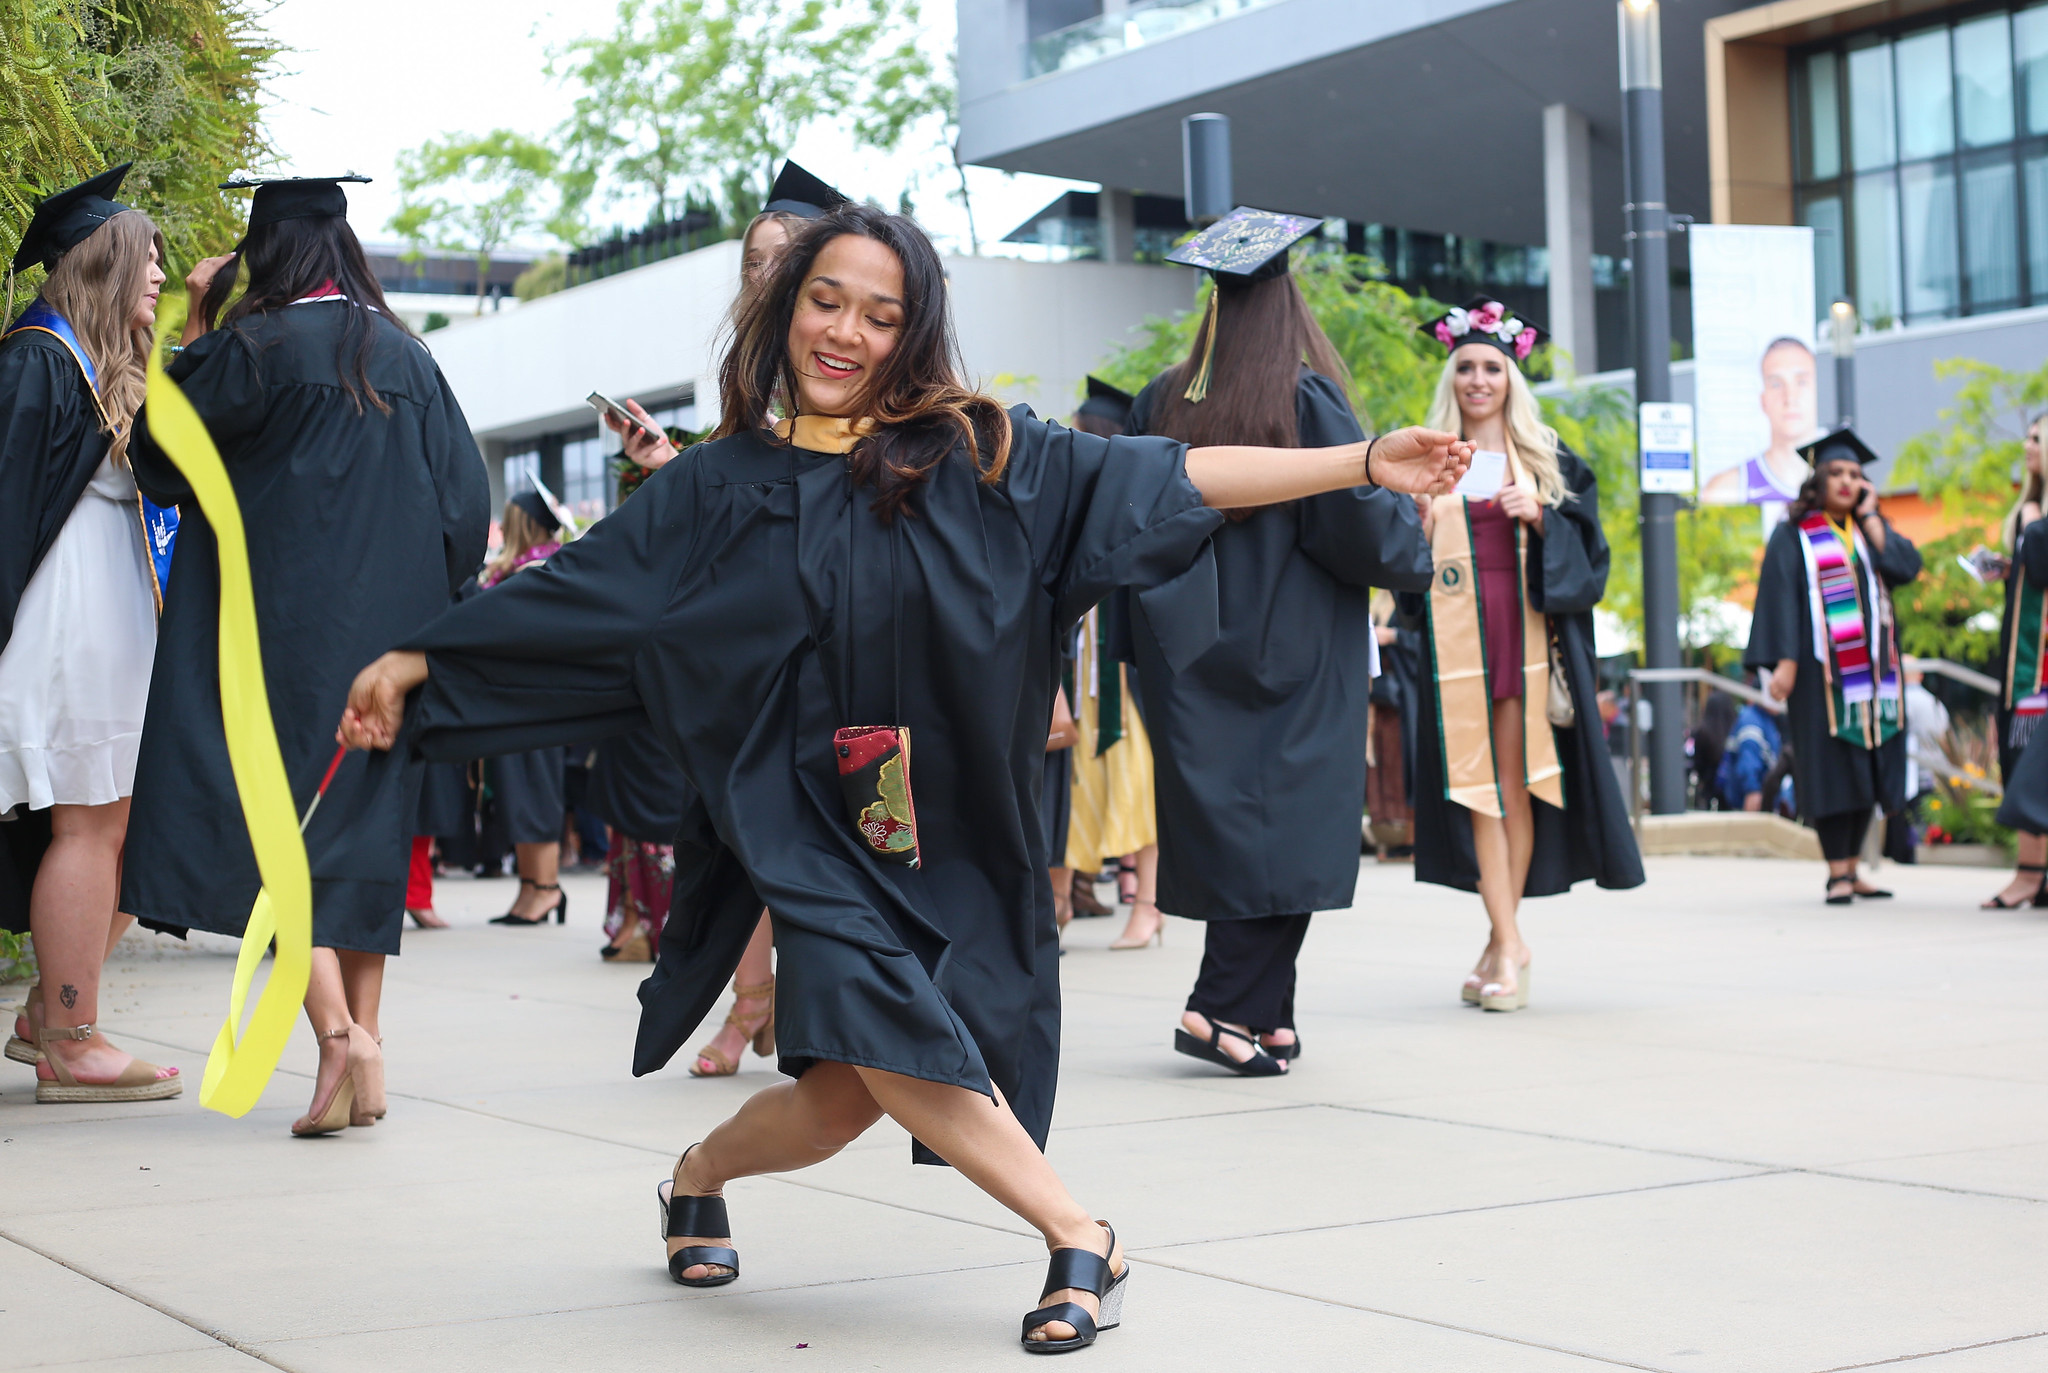 Sac State Academic Calendar Spring 2021 Virtual celebration, rescheduled Commencement for 2020 grads